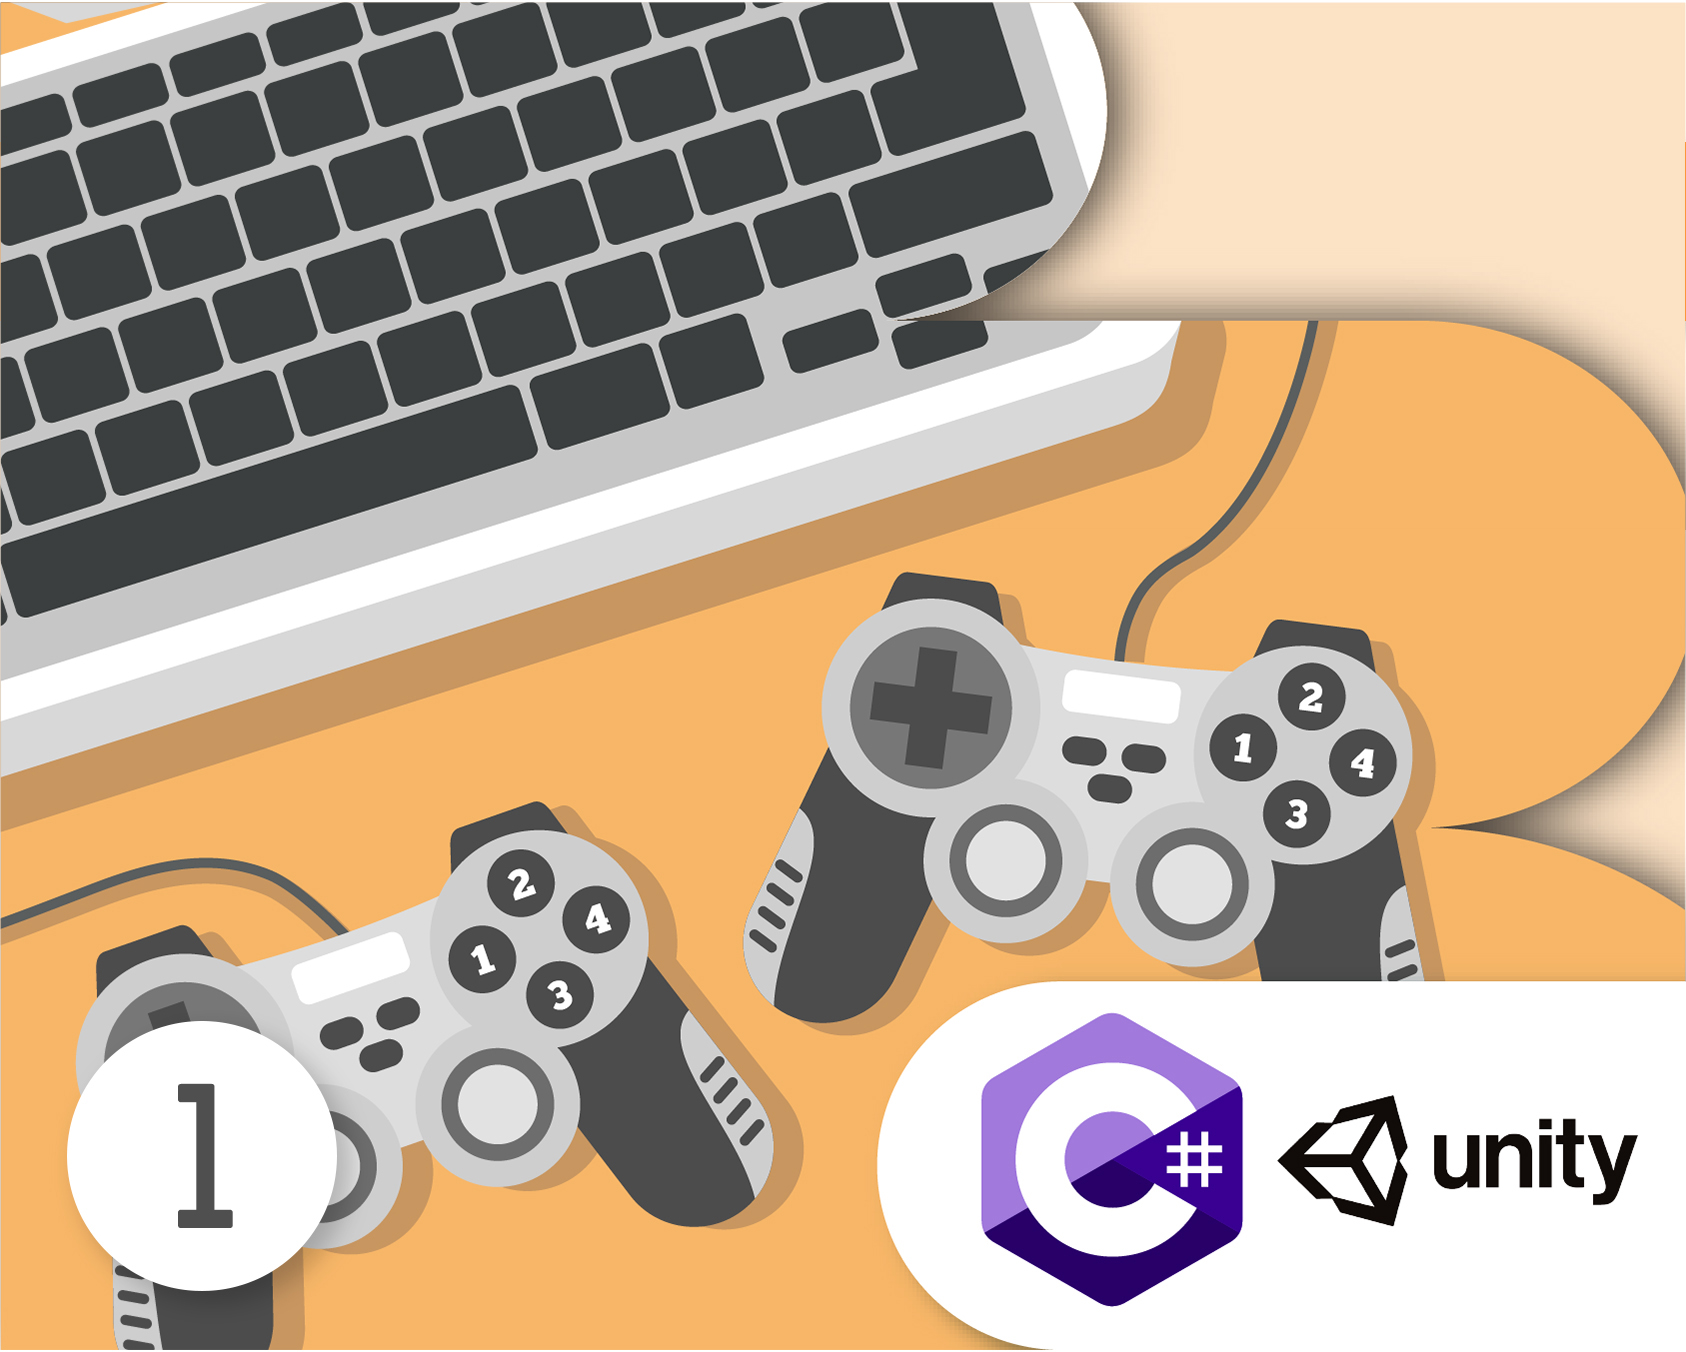 Creating computer games in Unity semester 1